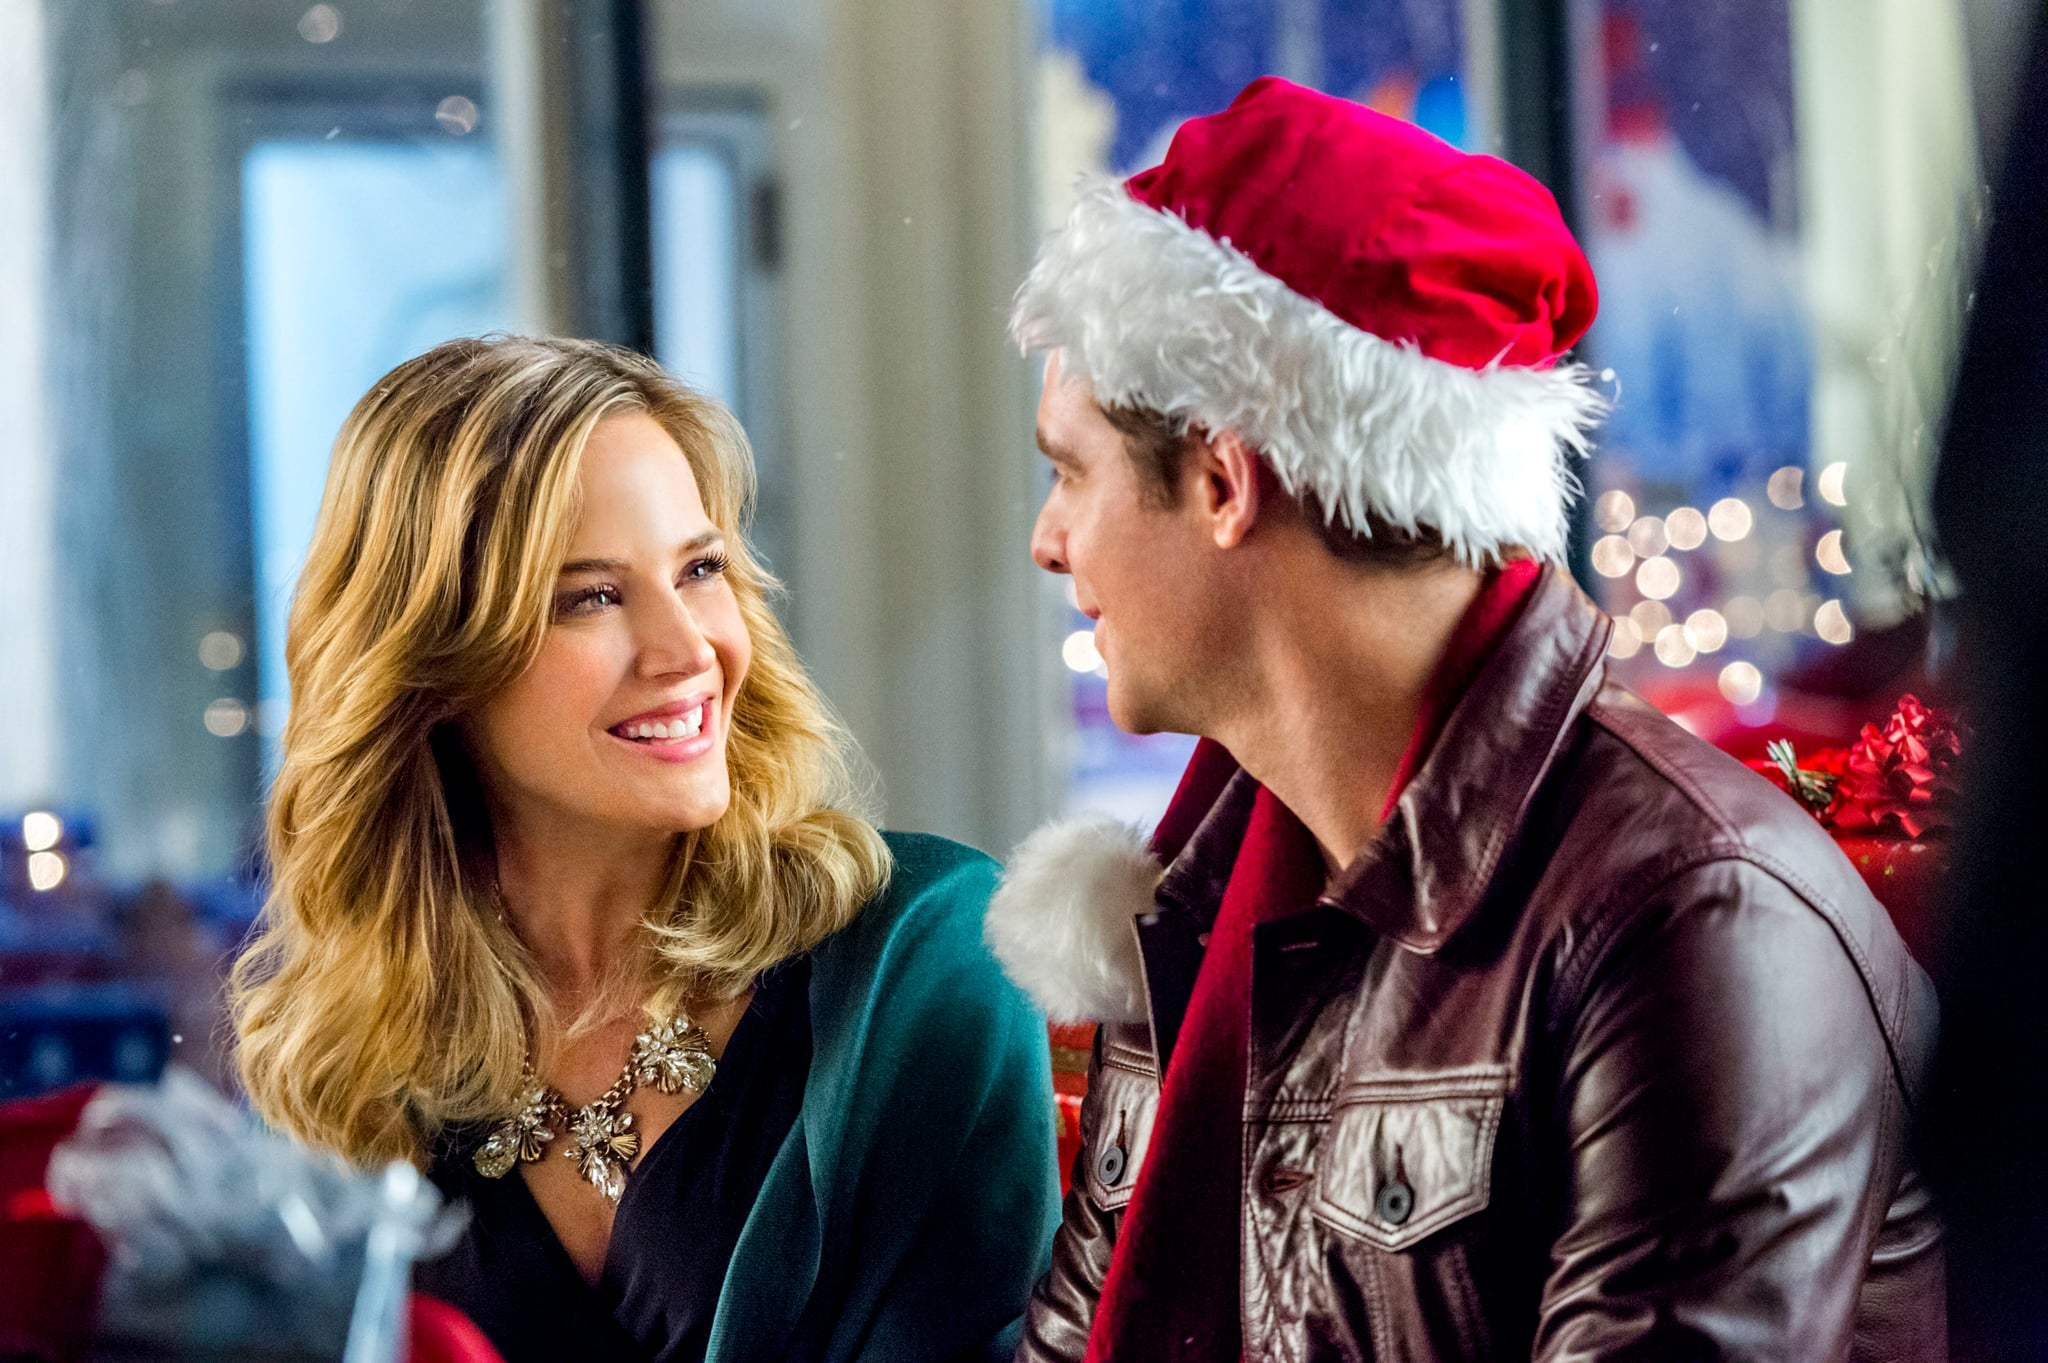 CHARMING CHRISTMAS, from left, Julie Benz, David Sutcliffe, 2015, ph: Brooke Palmer,  Hallmark Channel / courtesy Everett Collection